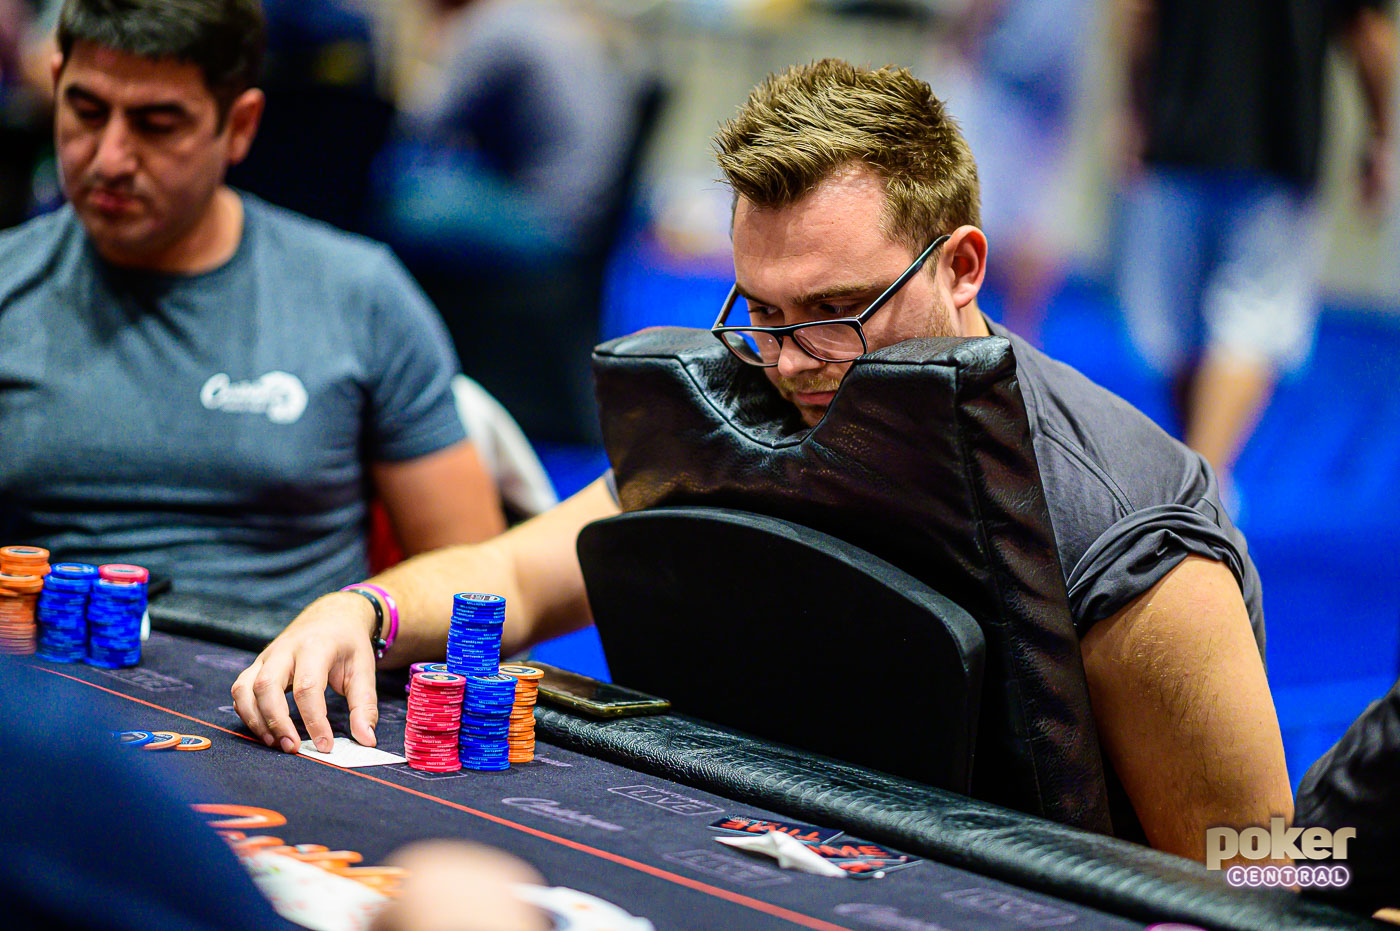 Scott Margereson Crosses 35 Million - Poker Central